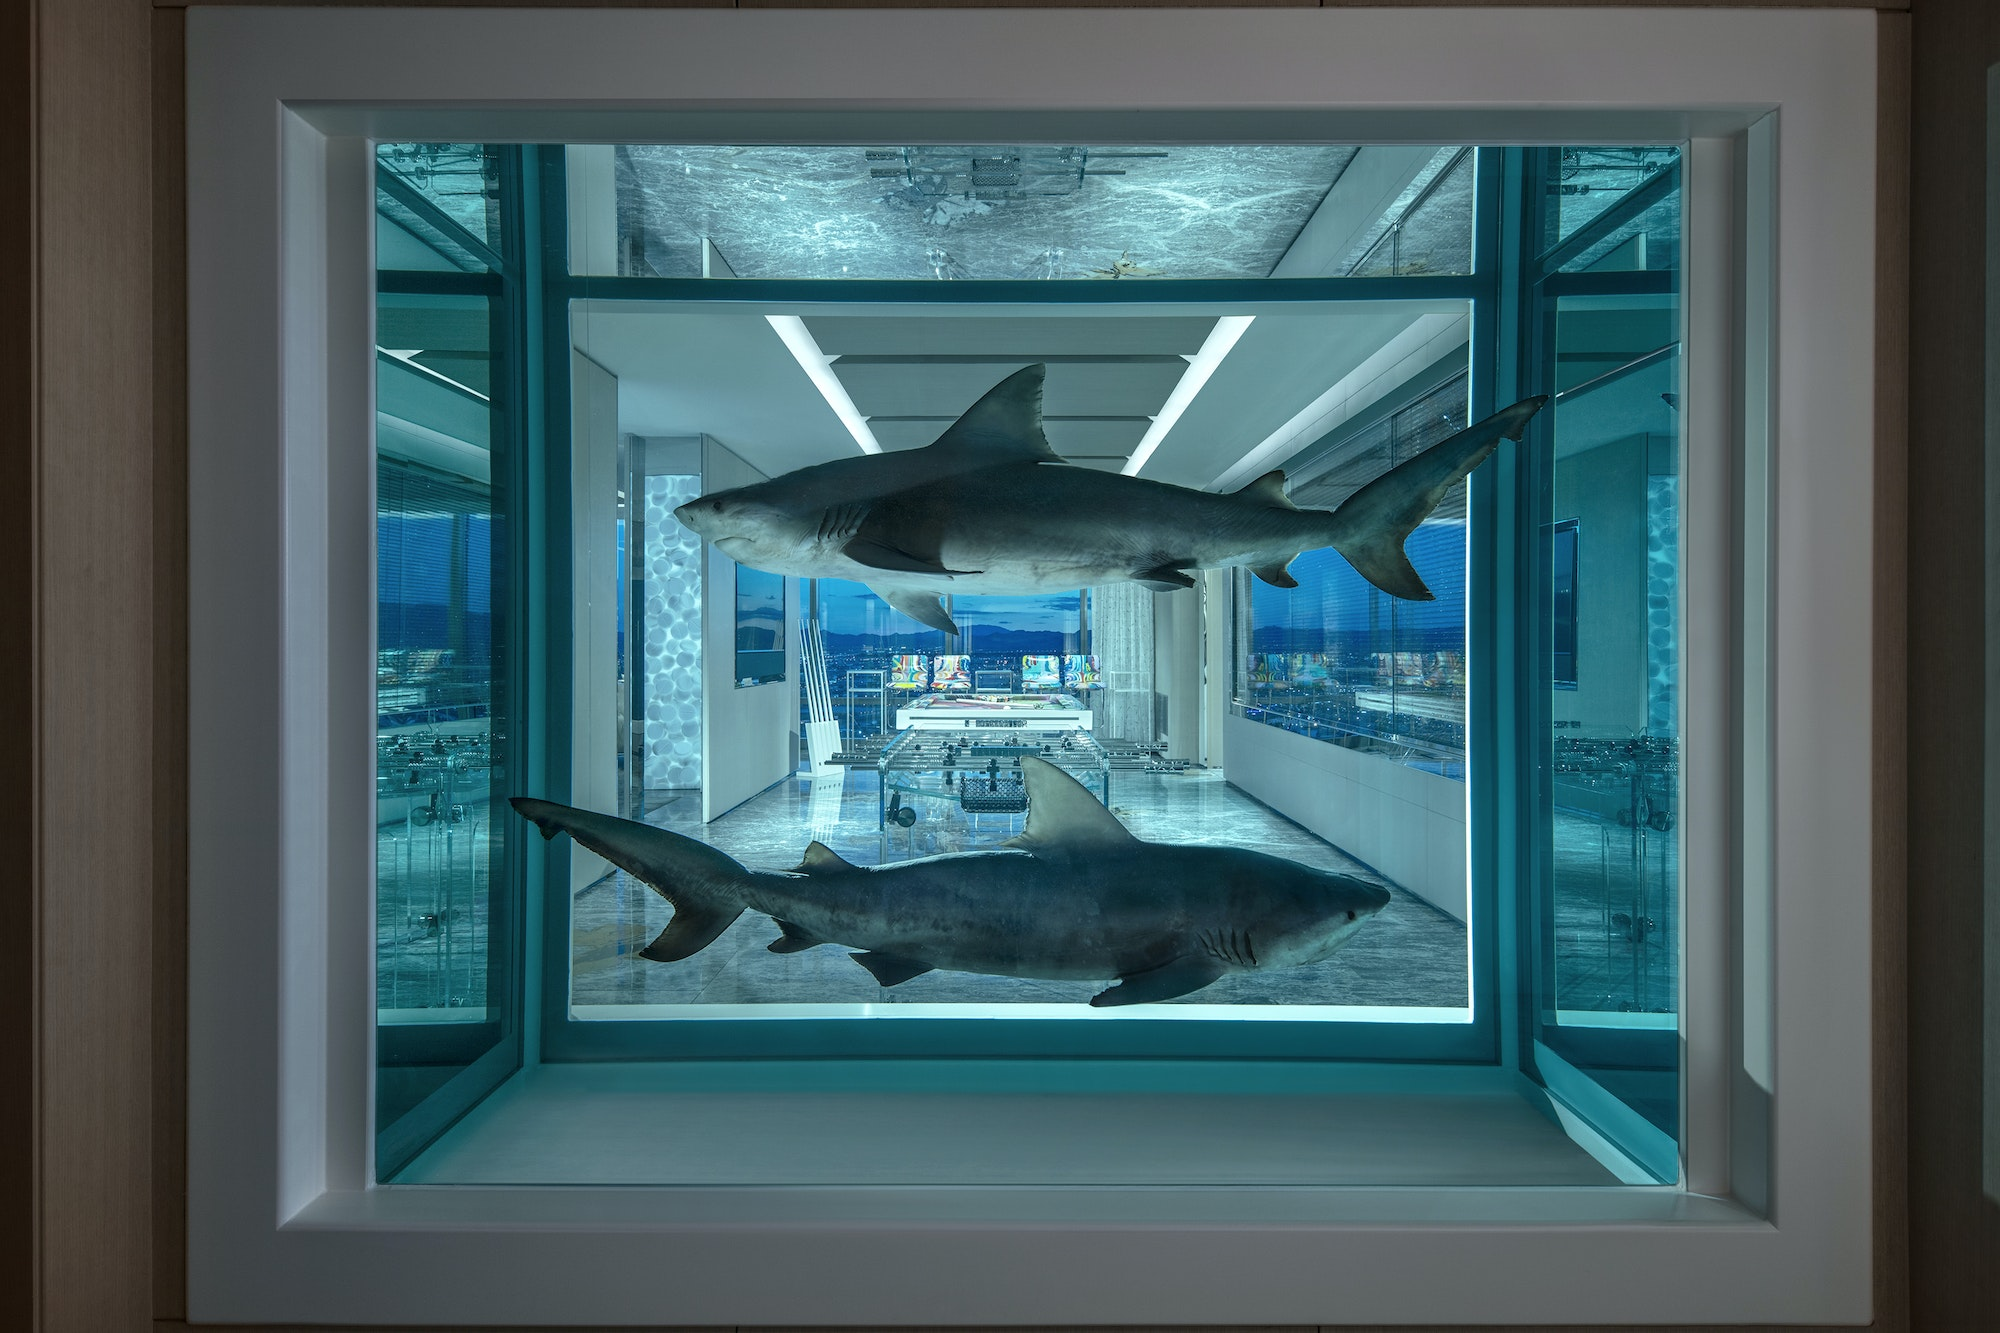 A very different kind of Vegas shark welcomes visitors into the suite.